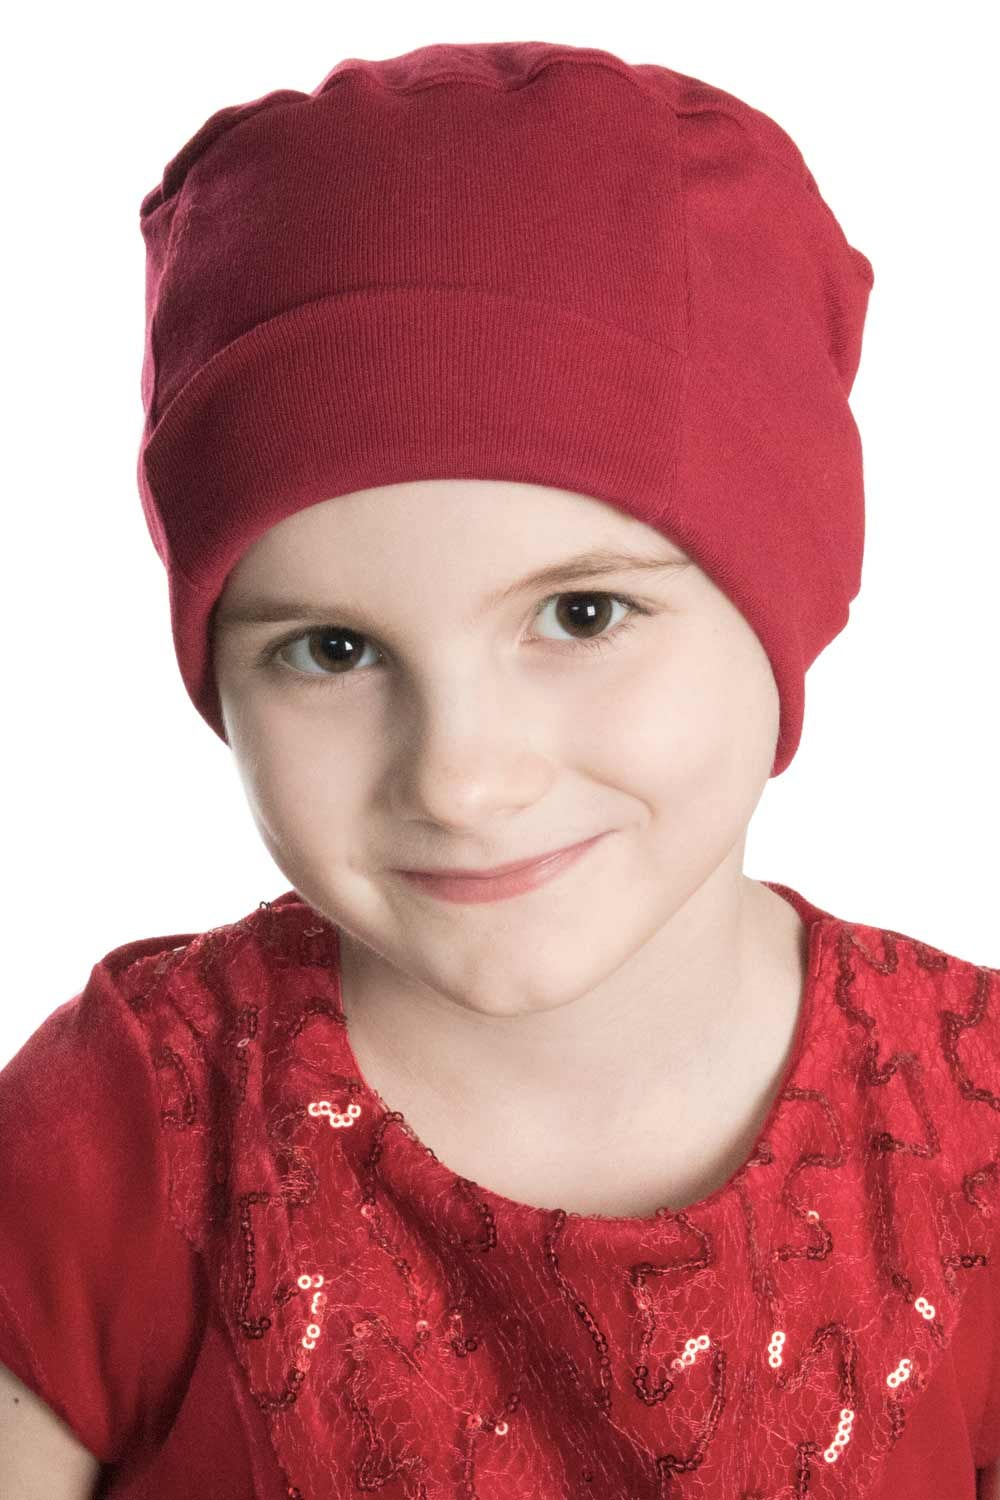 972ee8afc2fe0 Child Cozy Cap Hat | 100 Percent Cotton Beanies for Kids | Girls or Boys  Chemo Hats